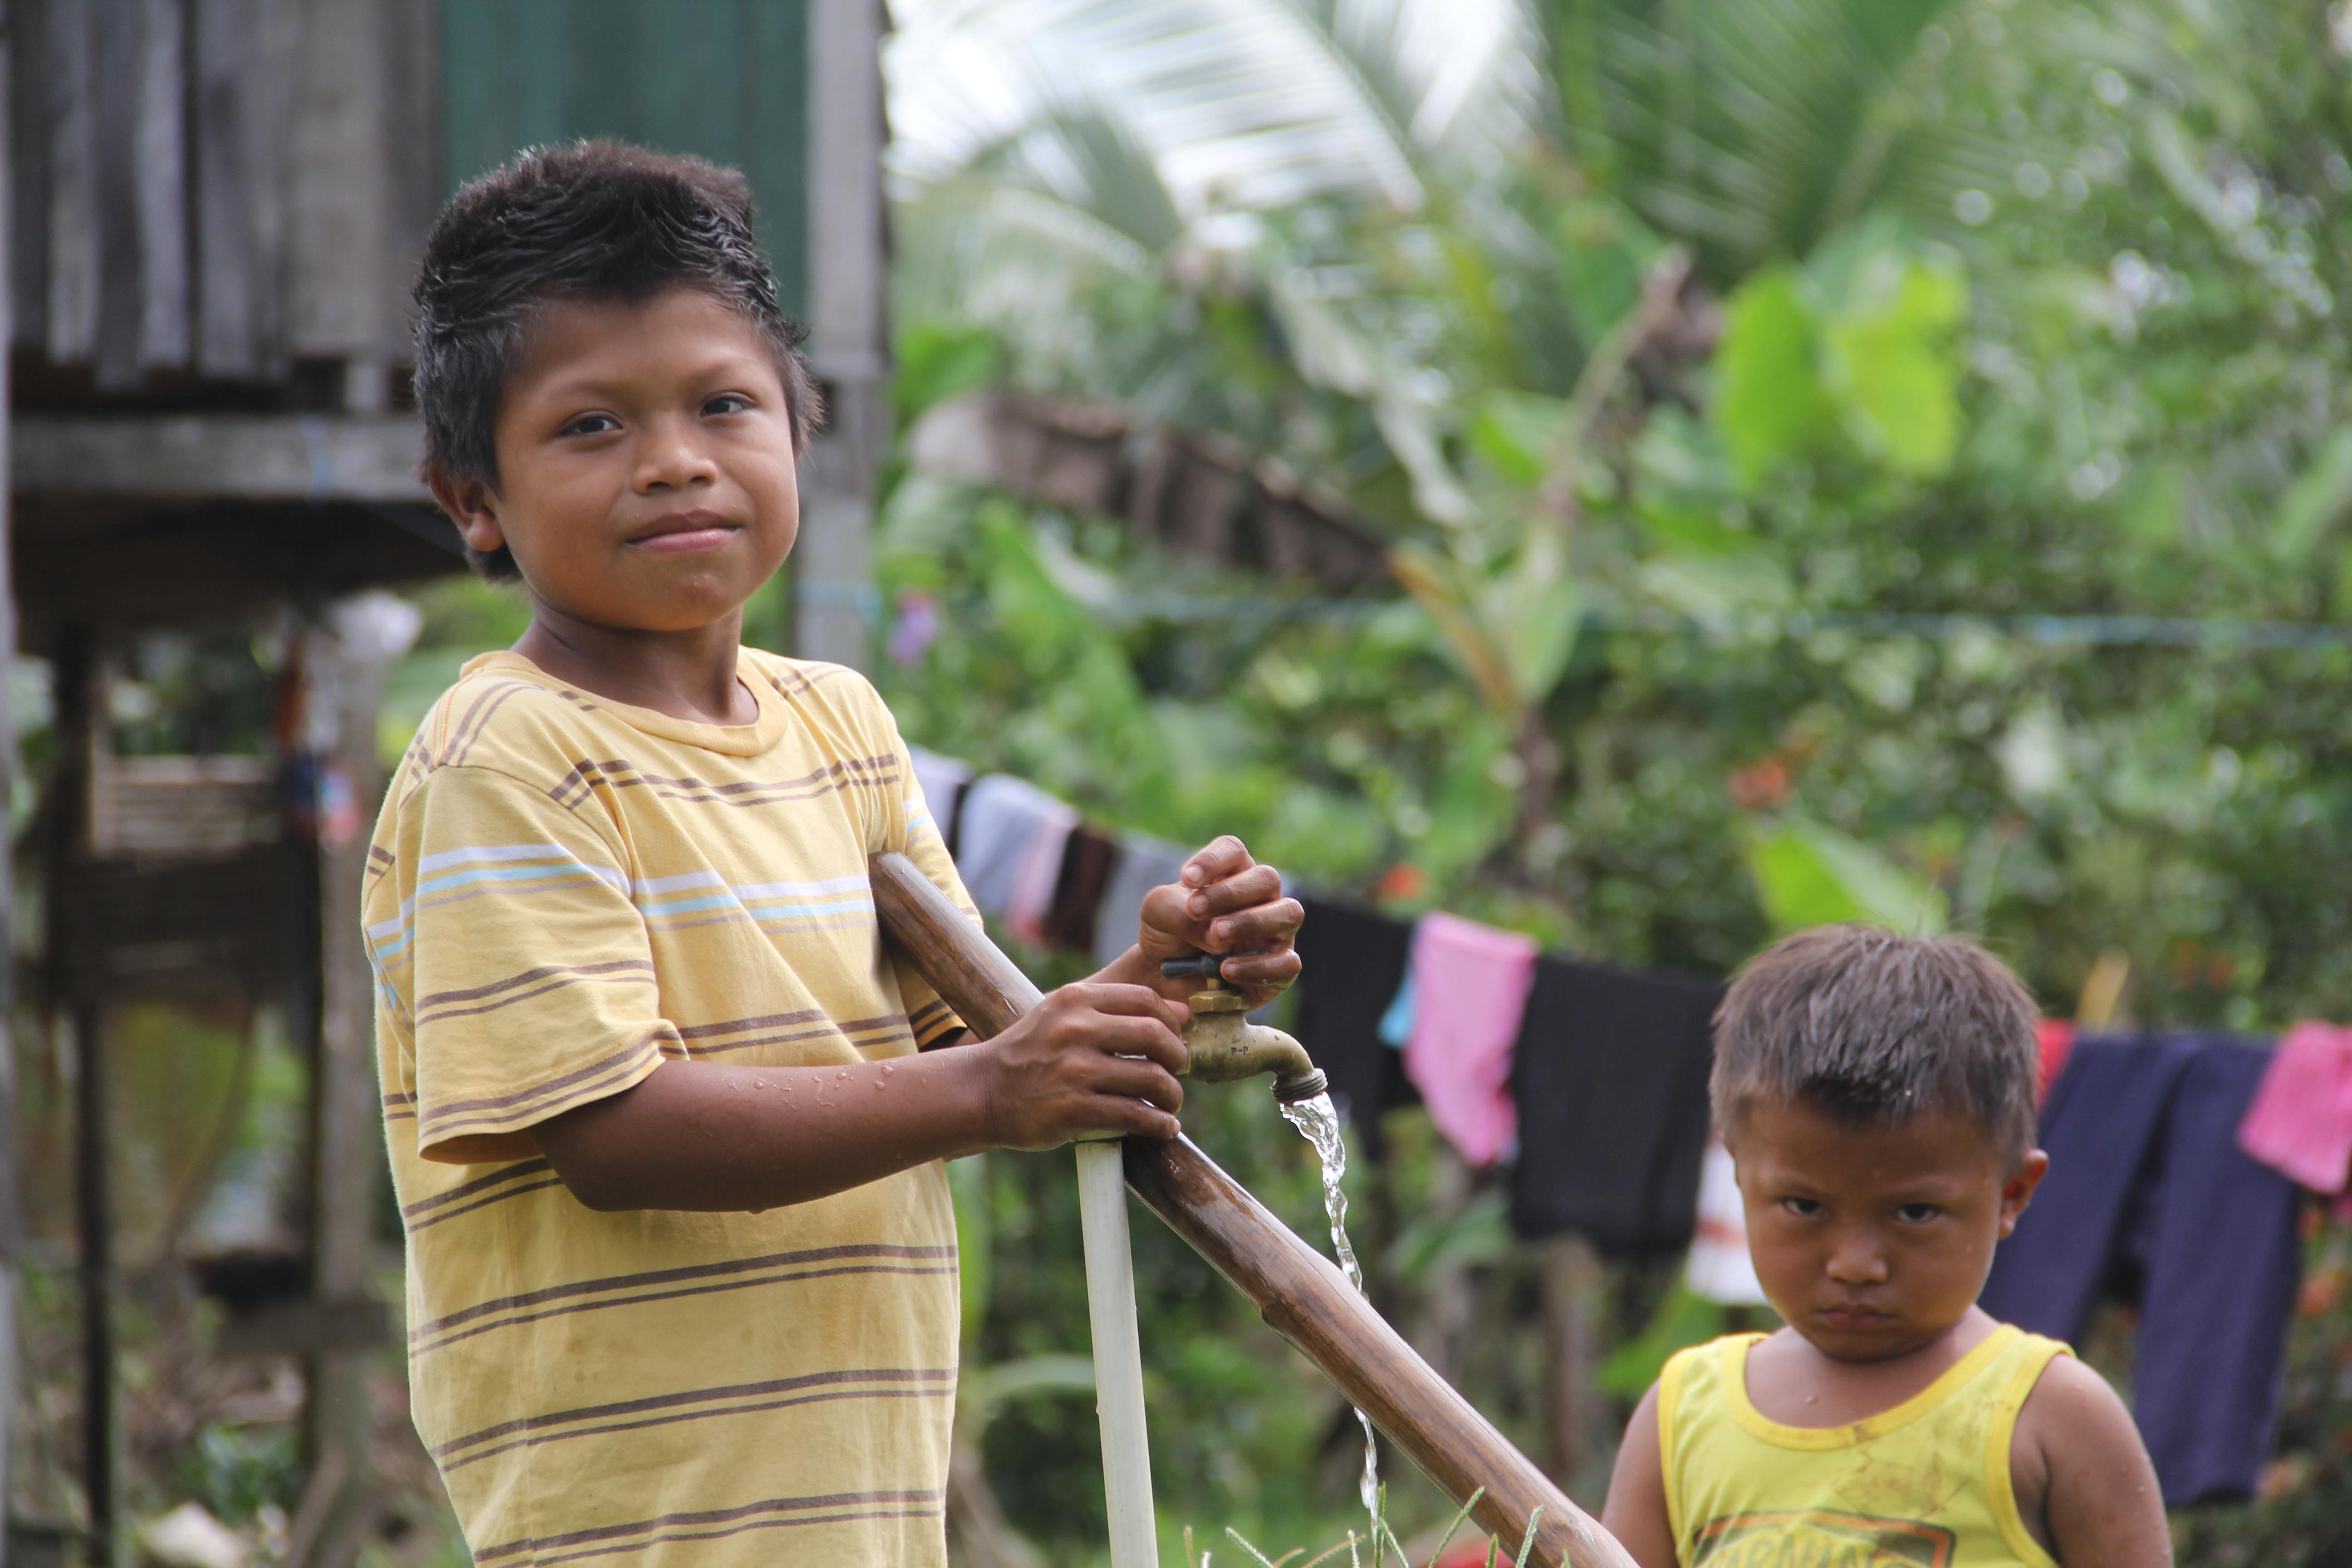 Safe and affordable water resources for all are crucial for poverty eradication and health protection